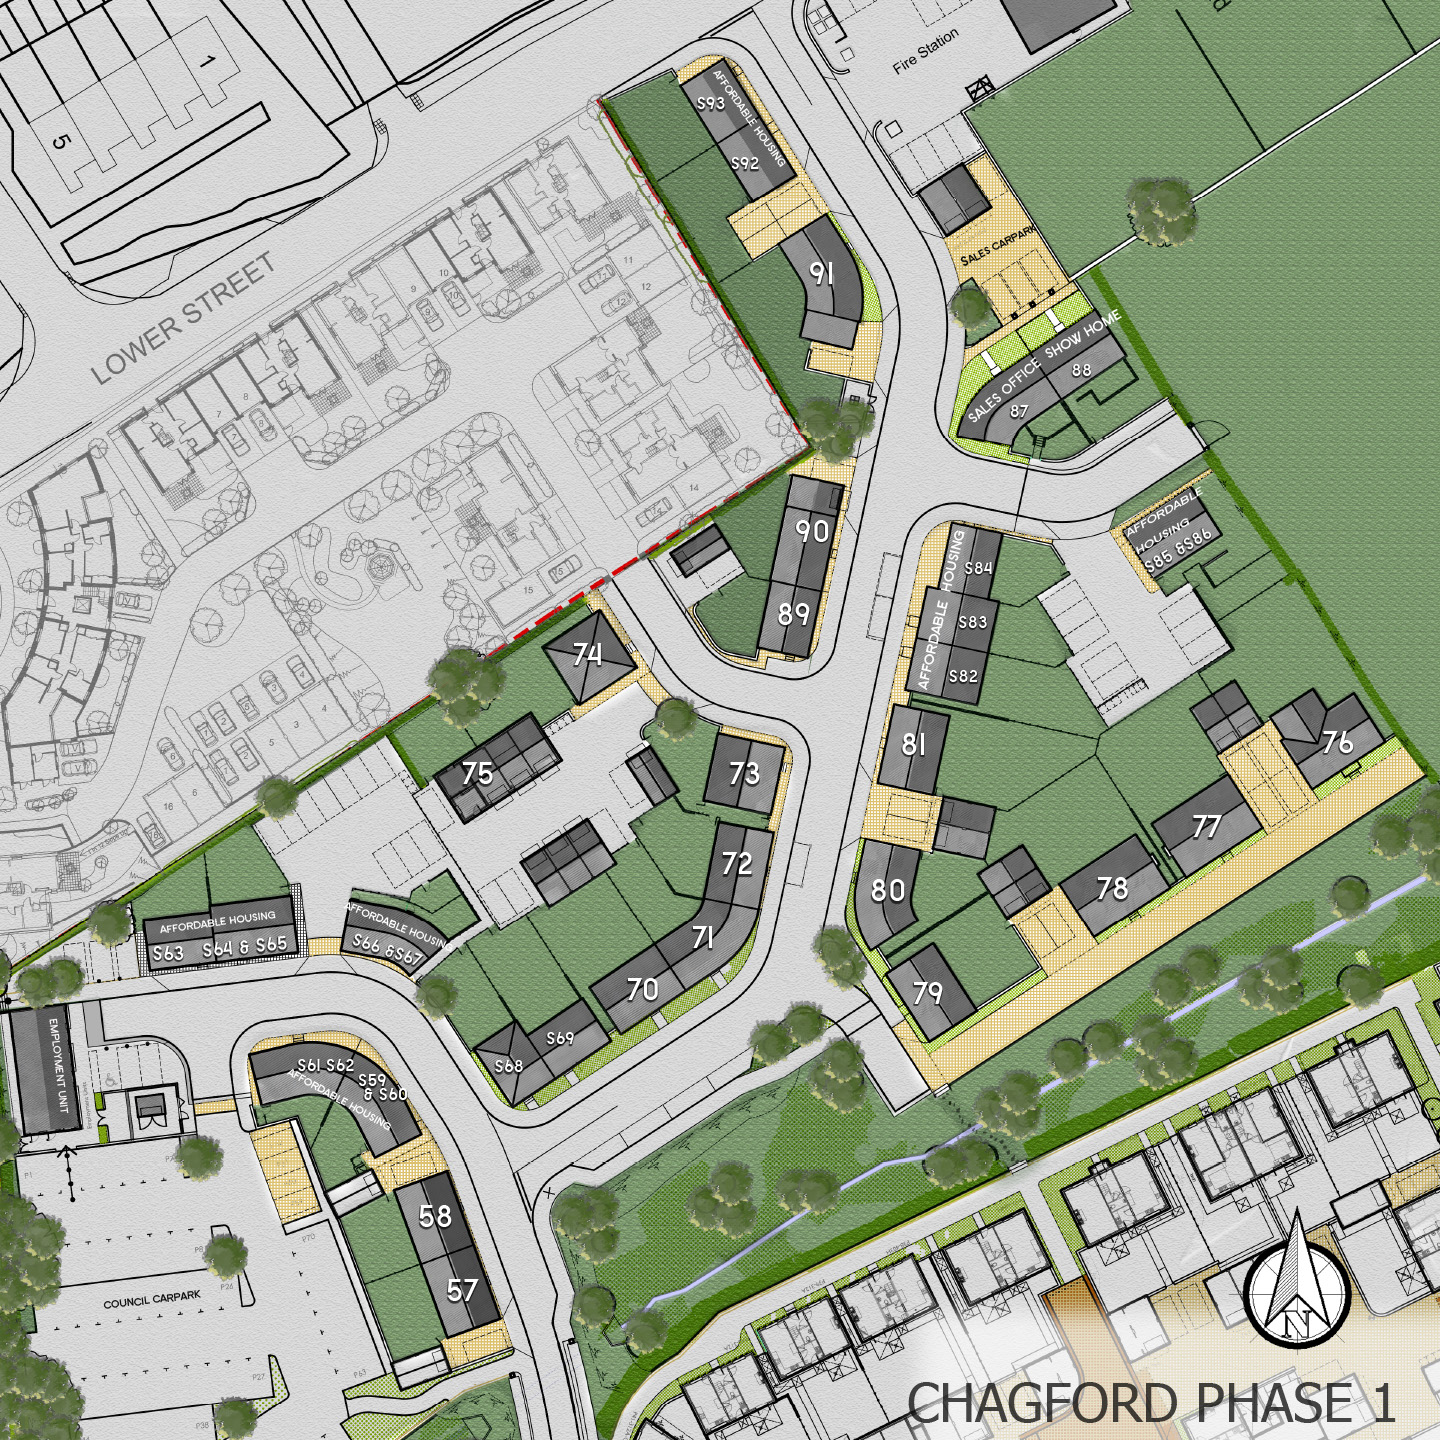 Chagford Phase 1 Site plan